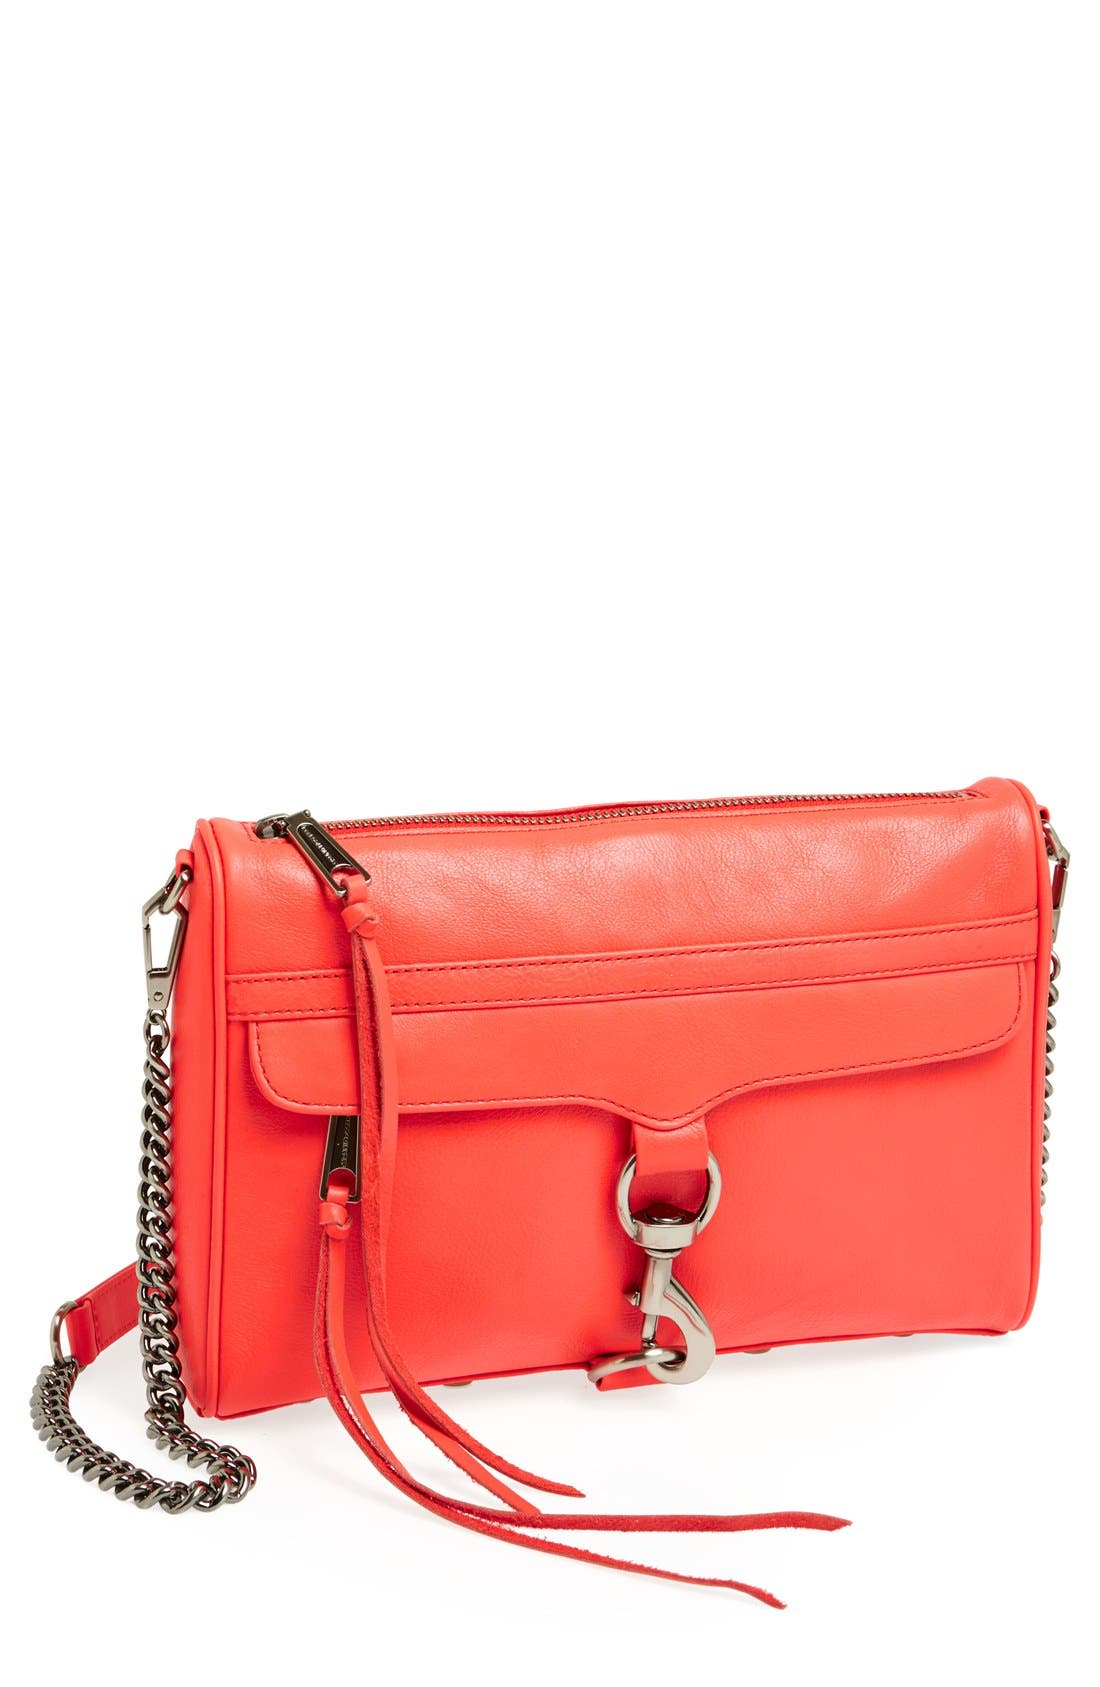 Alternate Image 1 Selected - Rebecca Minkoff 'MAC Clutch' Crossbody Bag